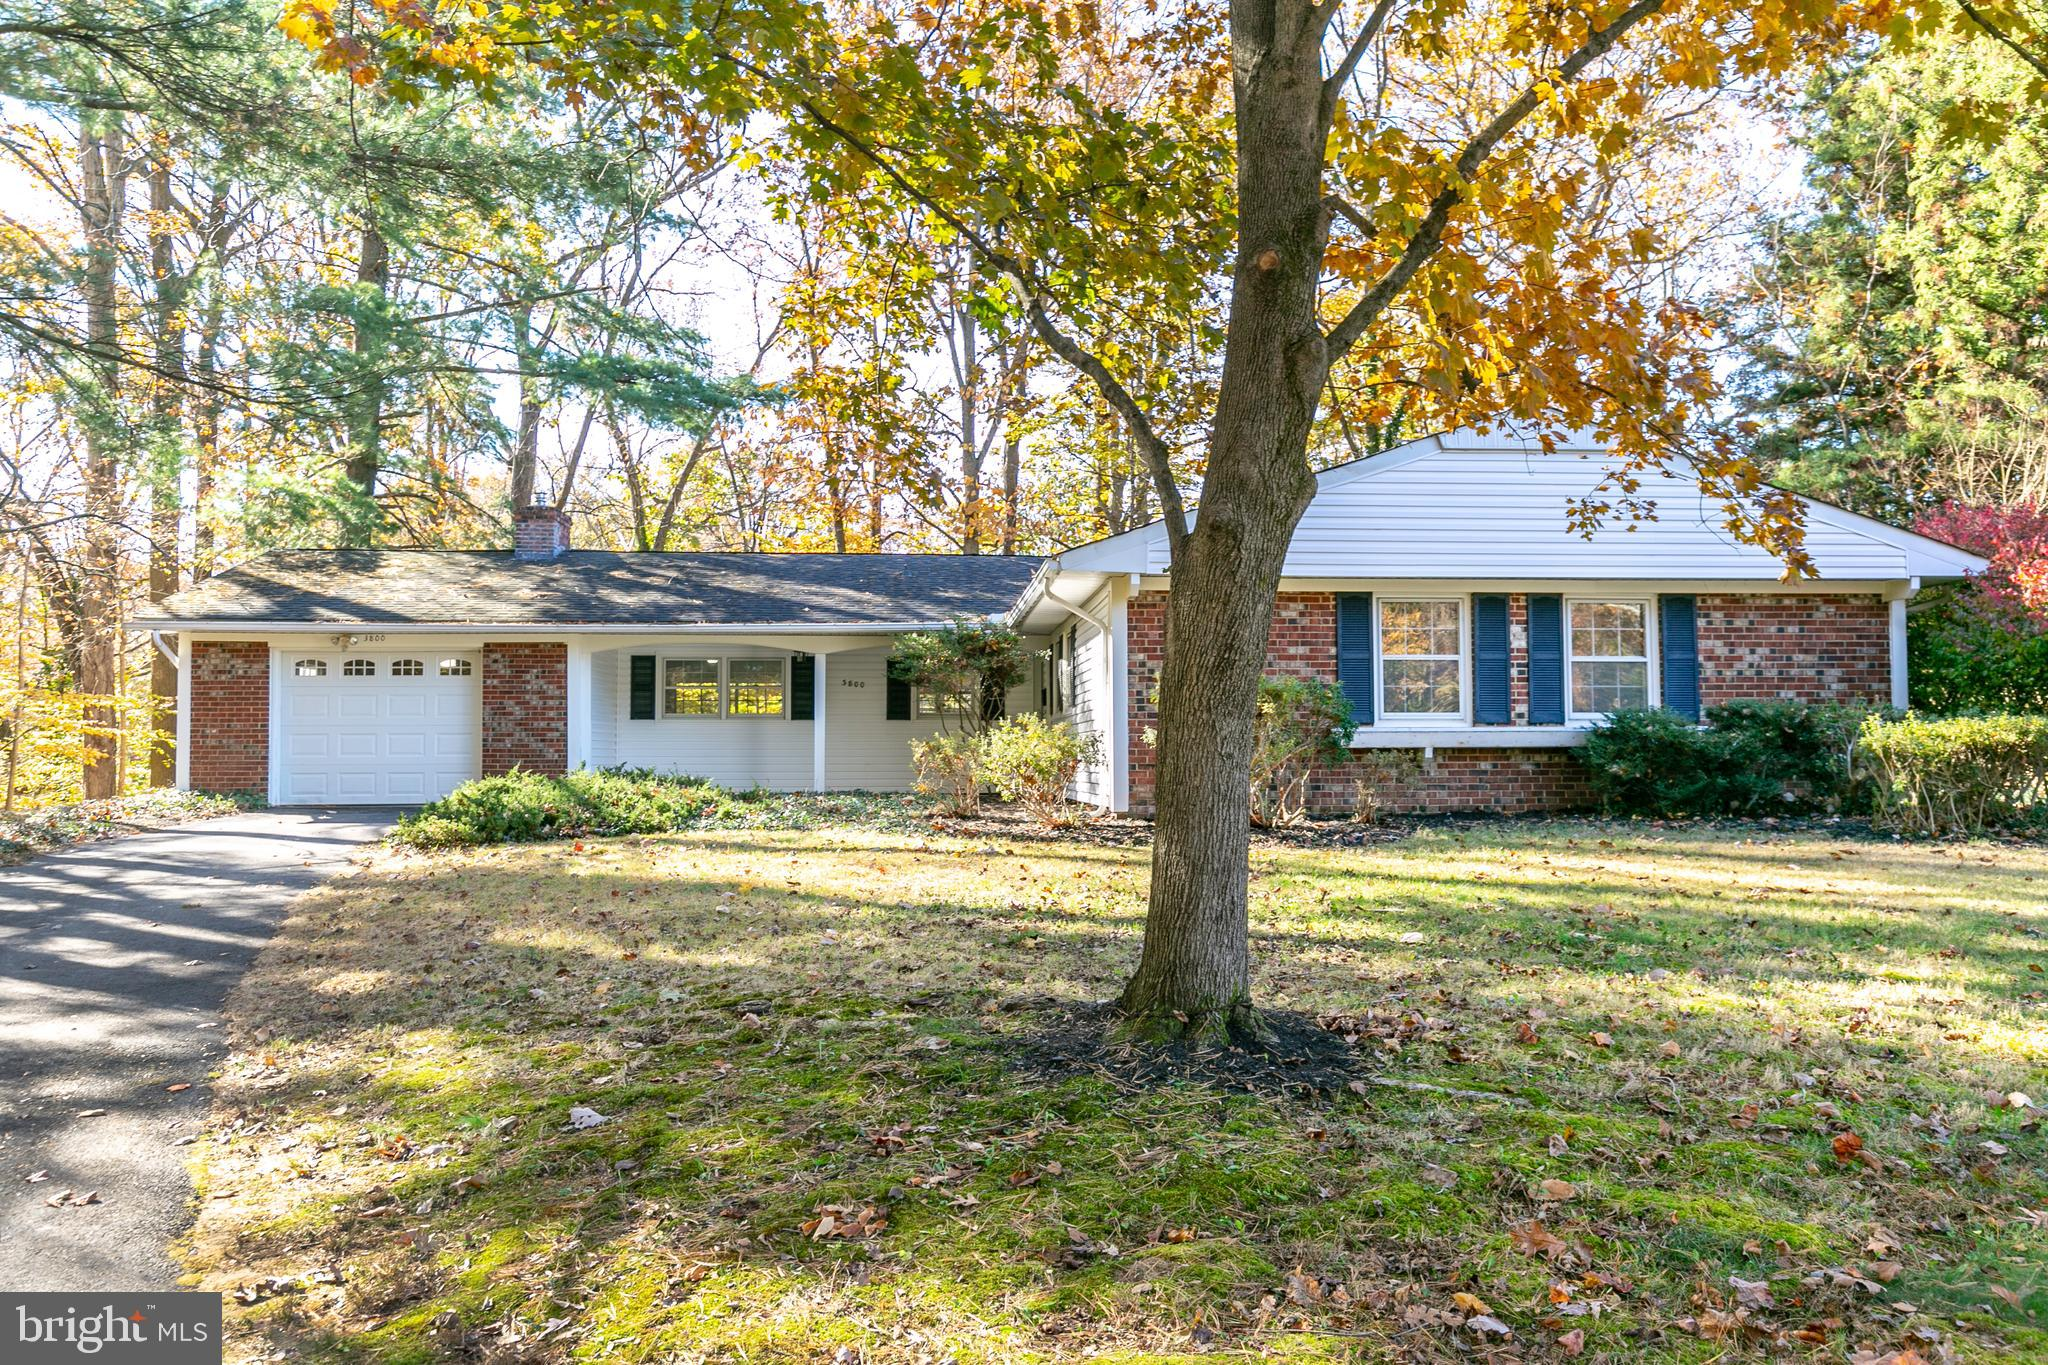 3800 YELLOWSTONE PLACE, BOWIE, MD 20715